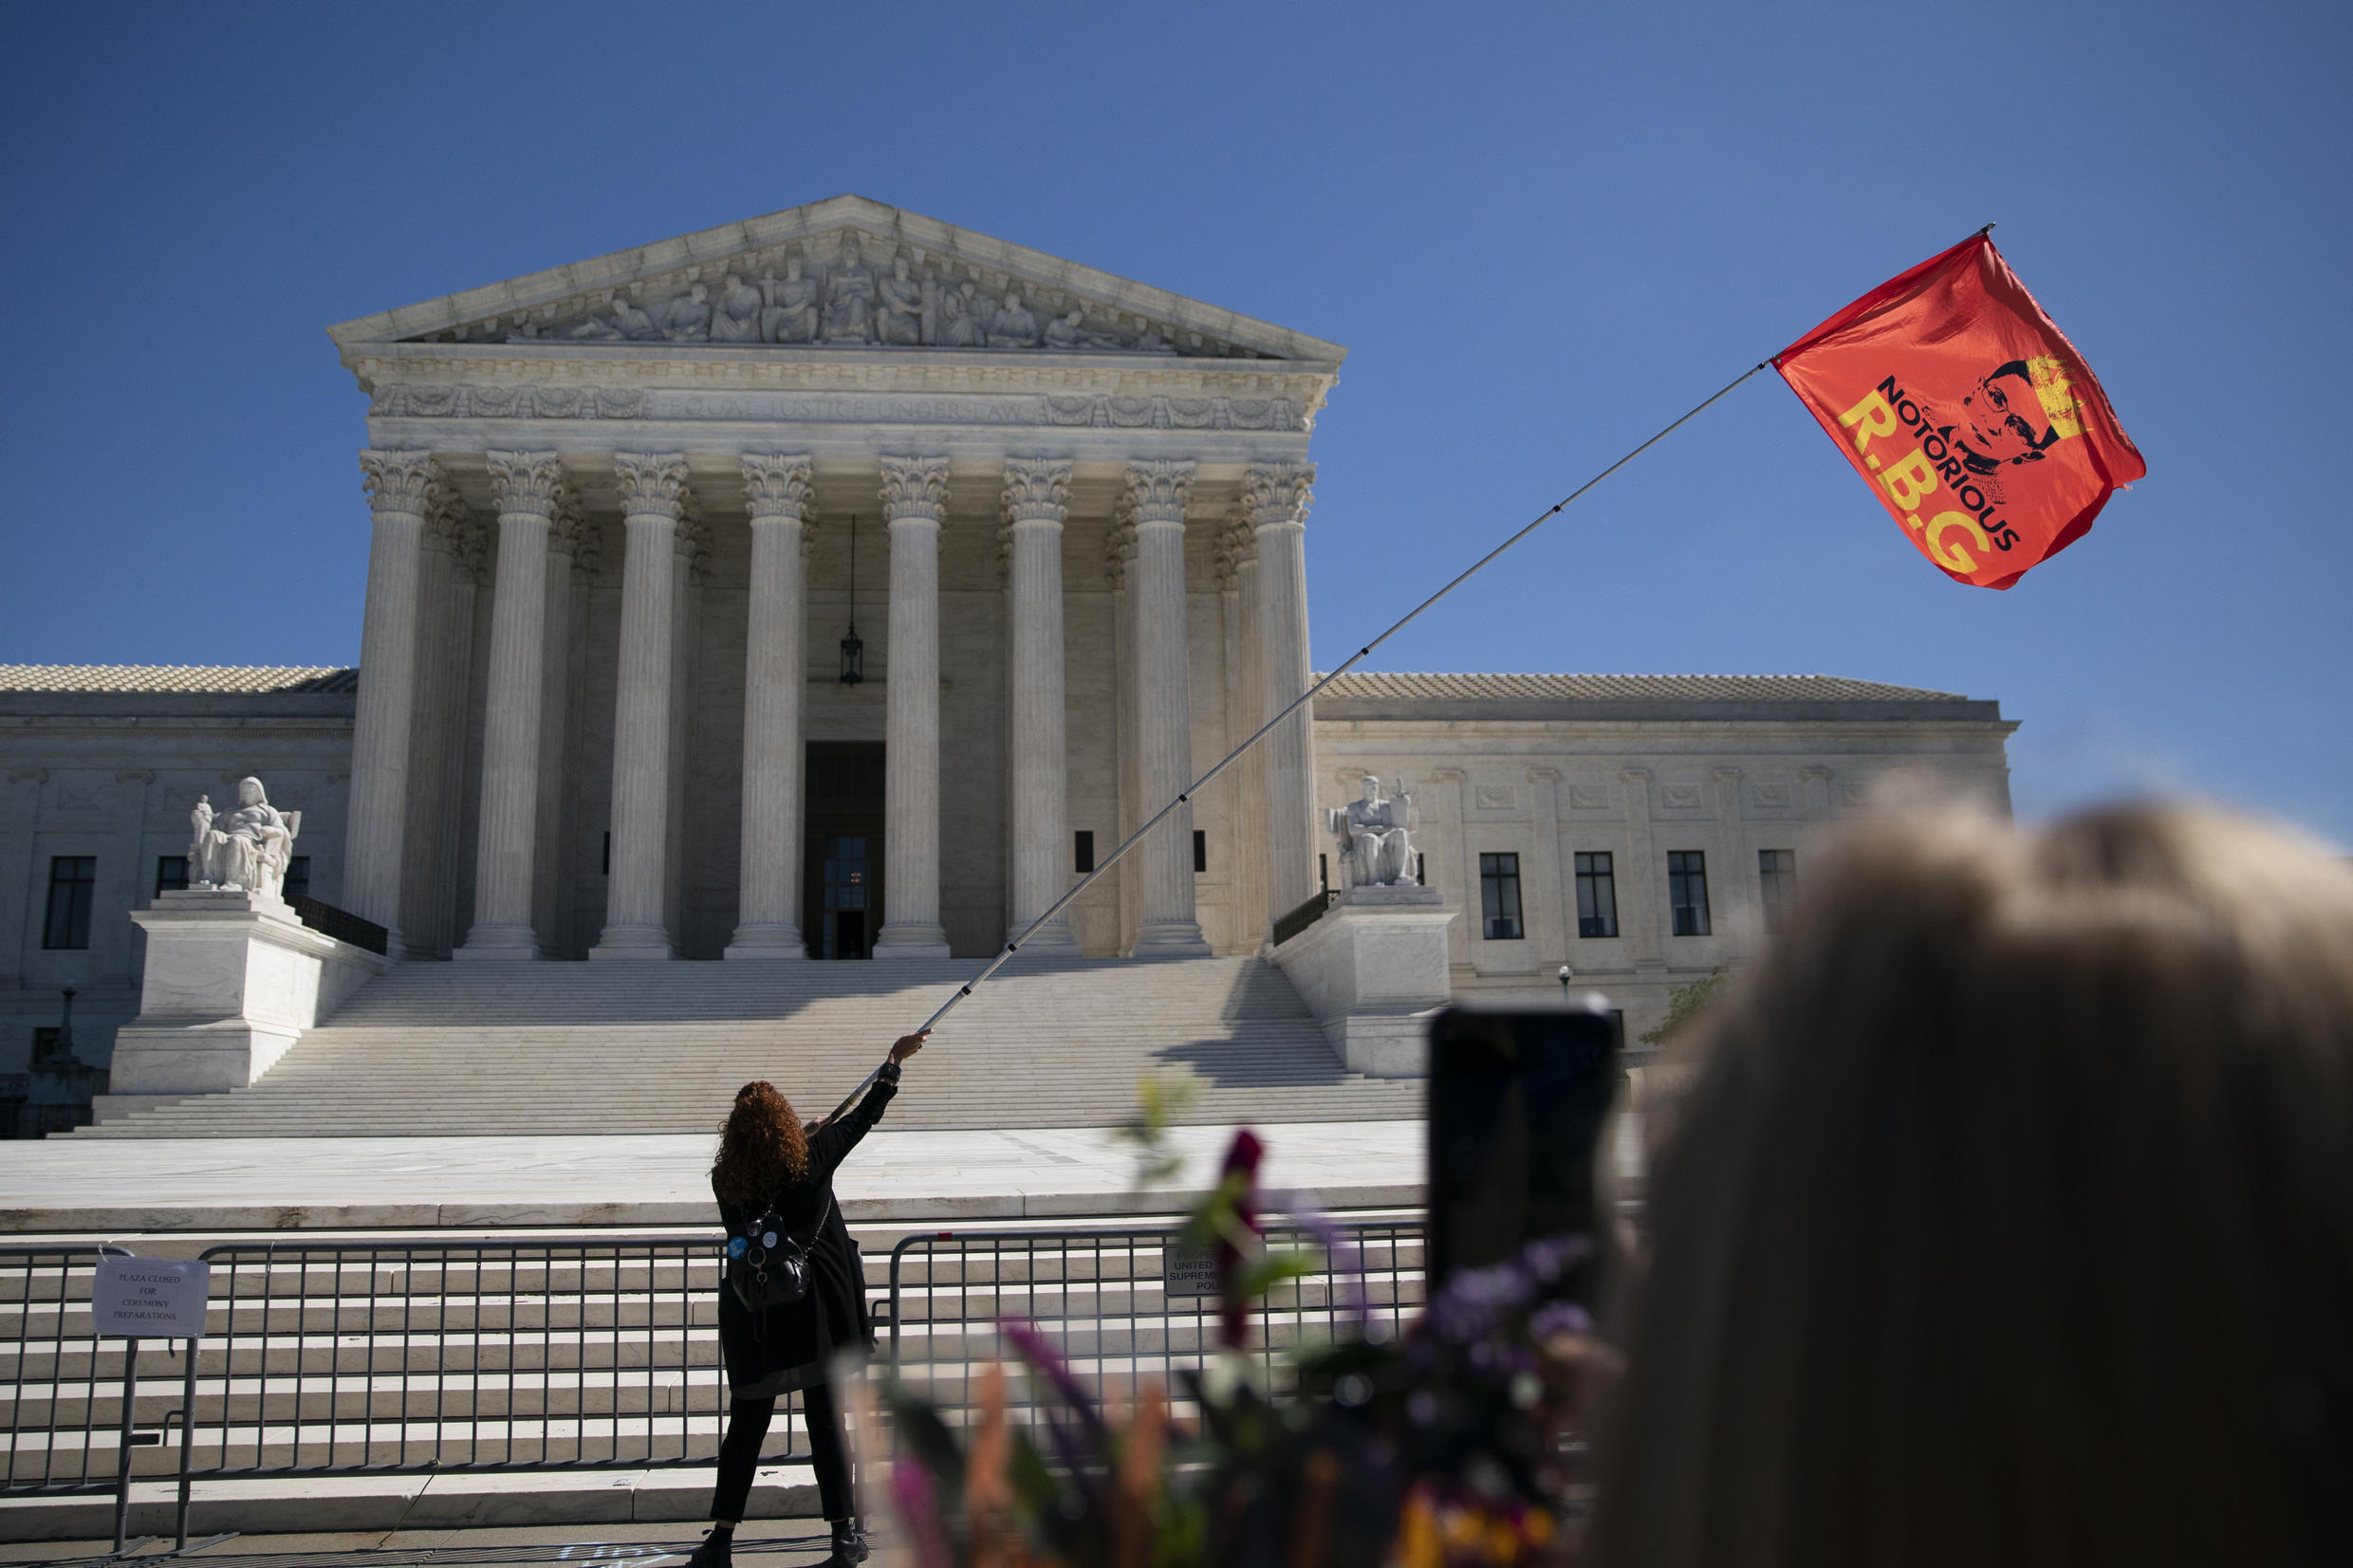 A woman waves an 'RBG' flag outside the US Supreme Court at a makeshift memorial for late Supreme Court Justice Ruth Bader Ginsburg on Sept. 21, 2020.